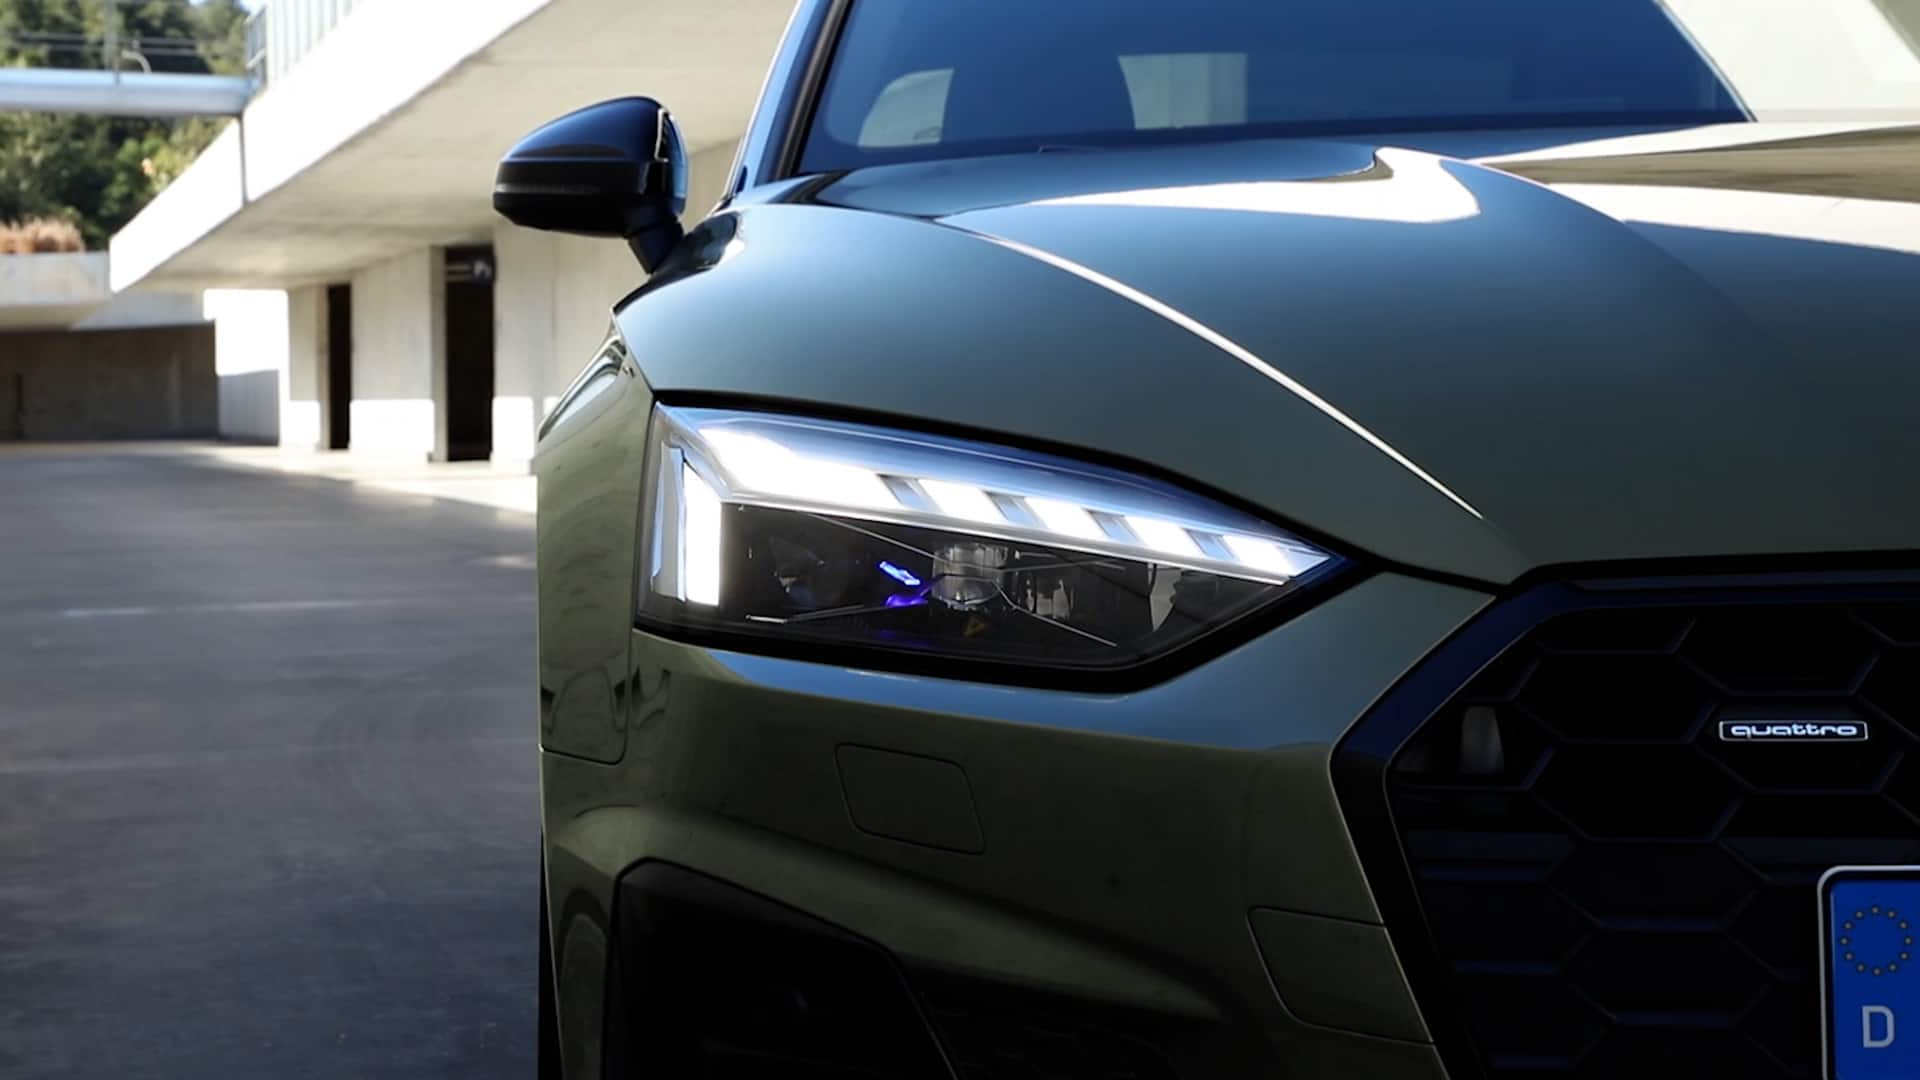 Audi A5 Coupé mit Matrix LED-Scheinwerfer